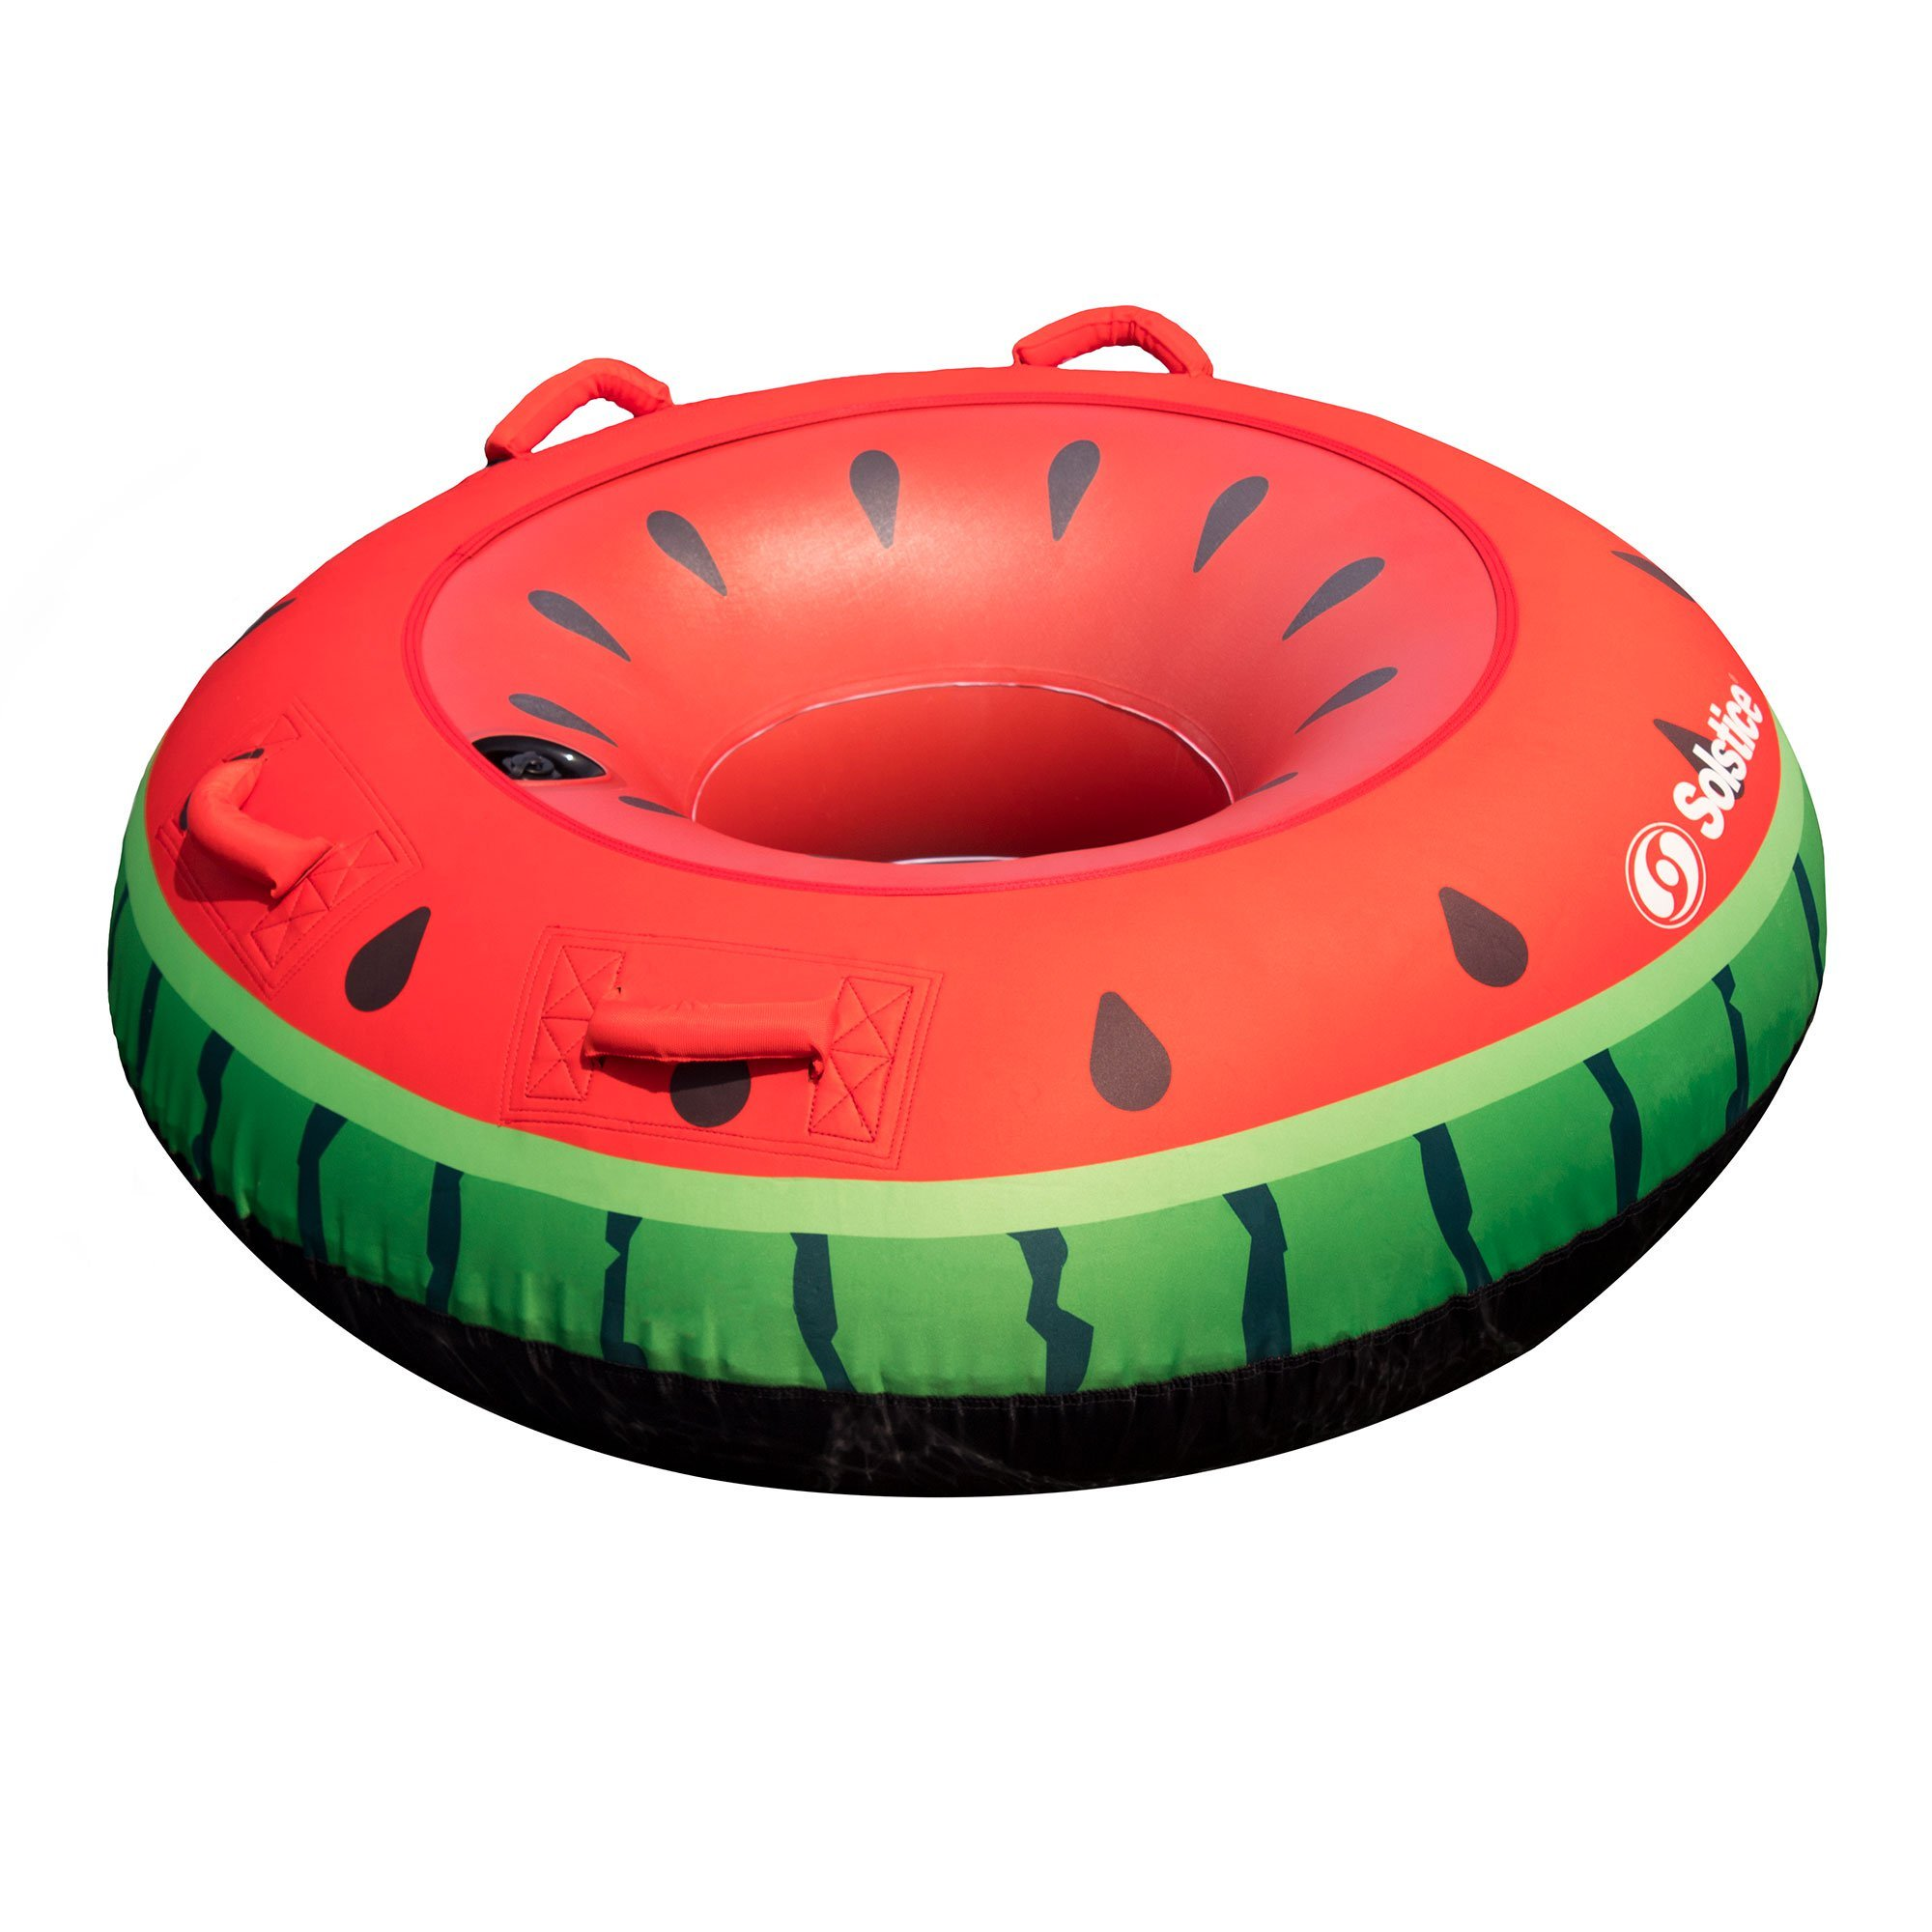 Swimline Inflatable Single Rider Watermelon Lake Ocean Water Towable Tube Float (6 Pack) by Swimline (Image #2)